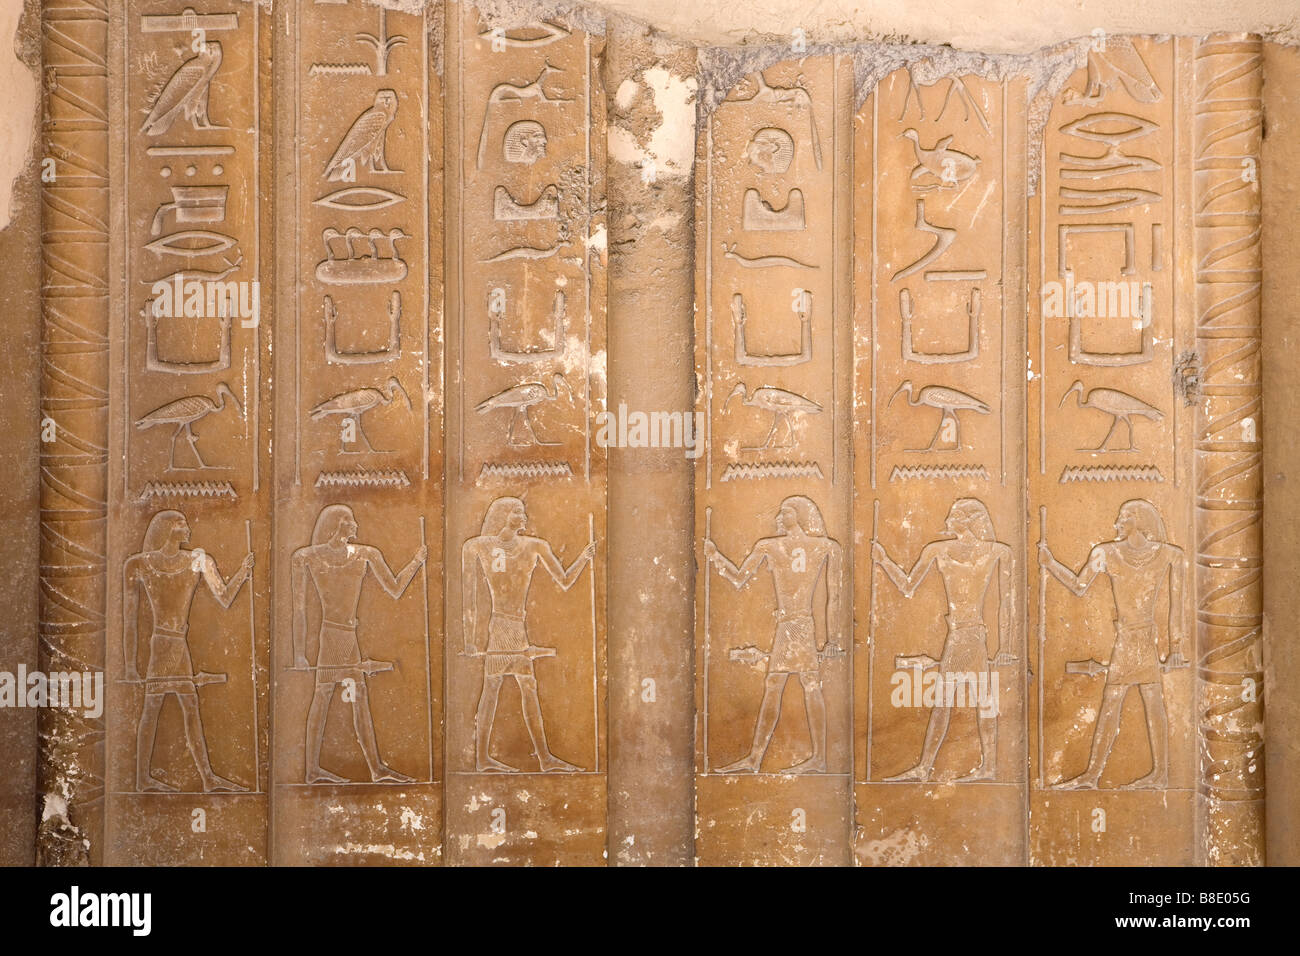 Relief from the Mastaba tomb of Cheif Justice and Vizier Kagemni, Sakkara Egypt - Stock Image